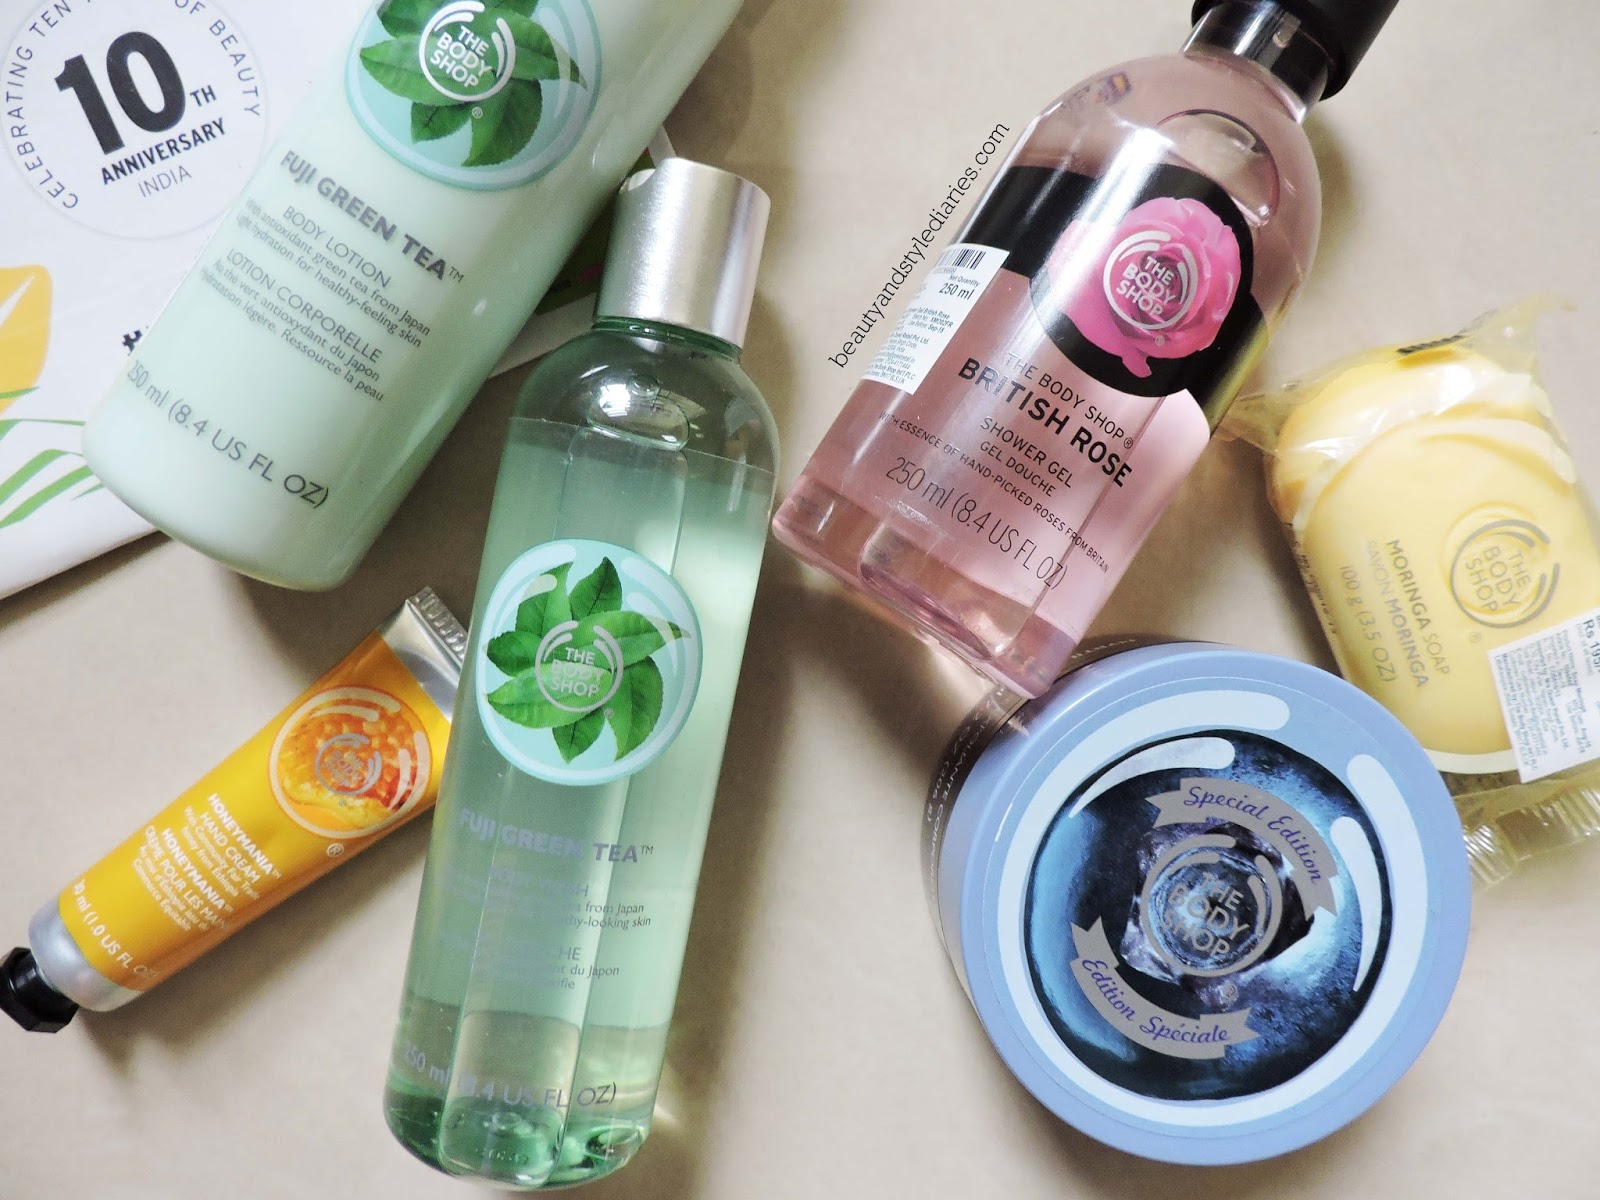 THE BODY SHOP SALE HAUL | Beauty & Style Diaries